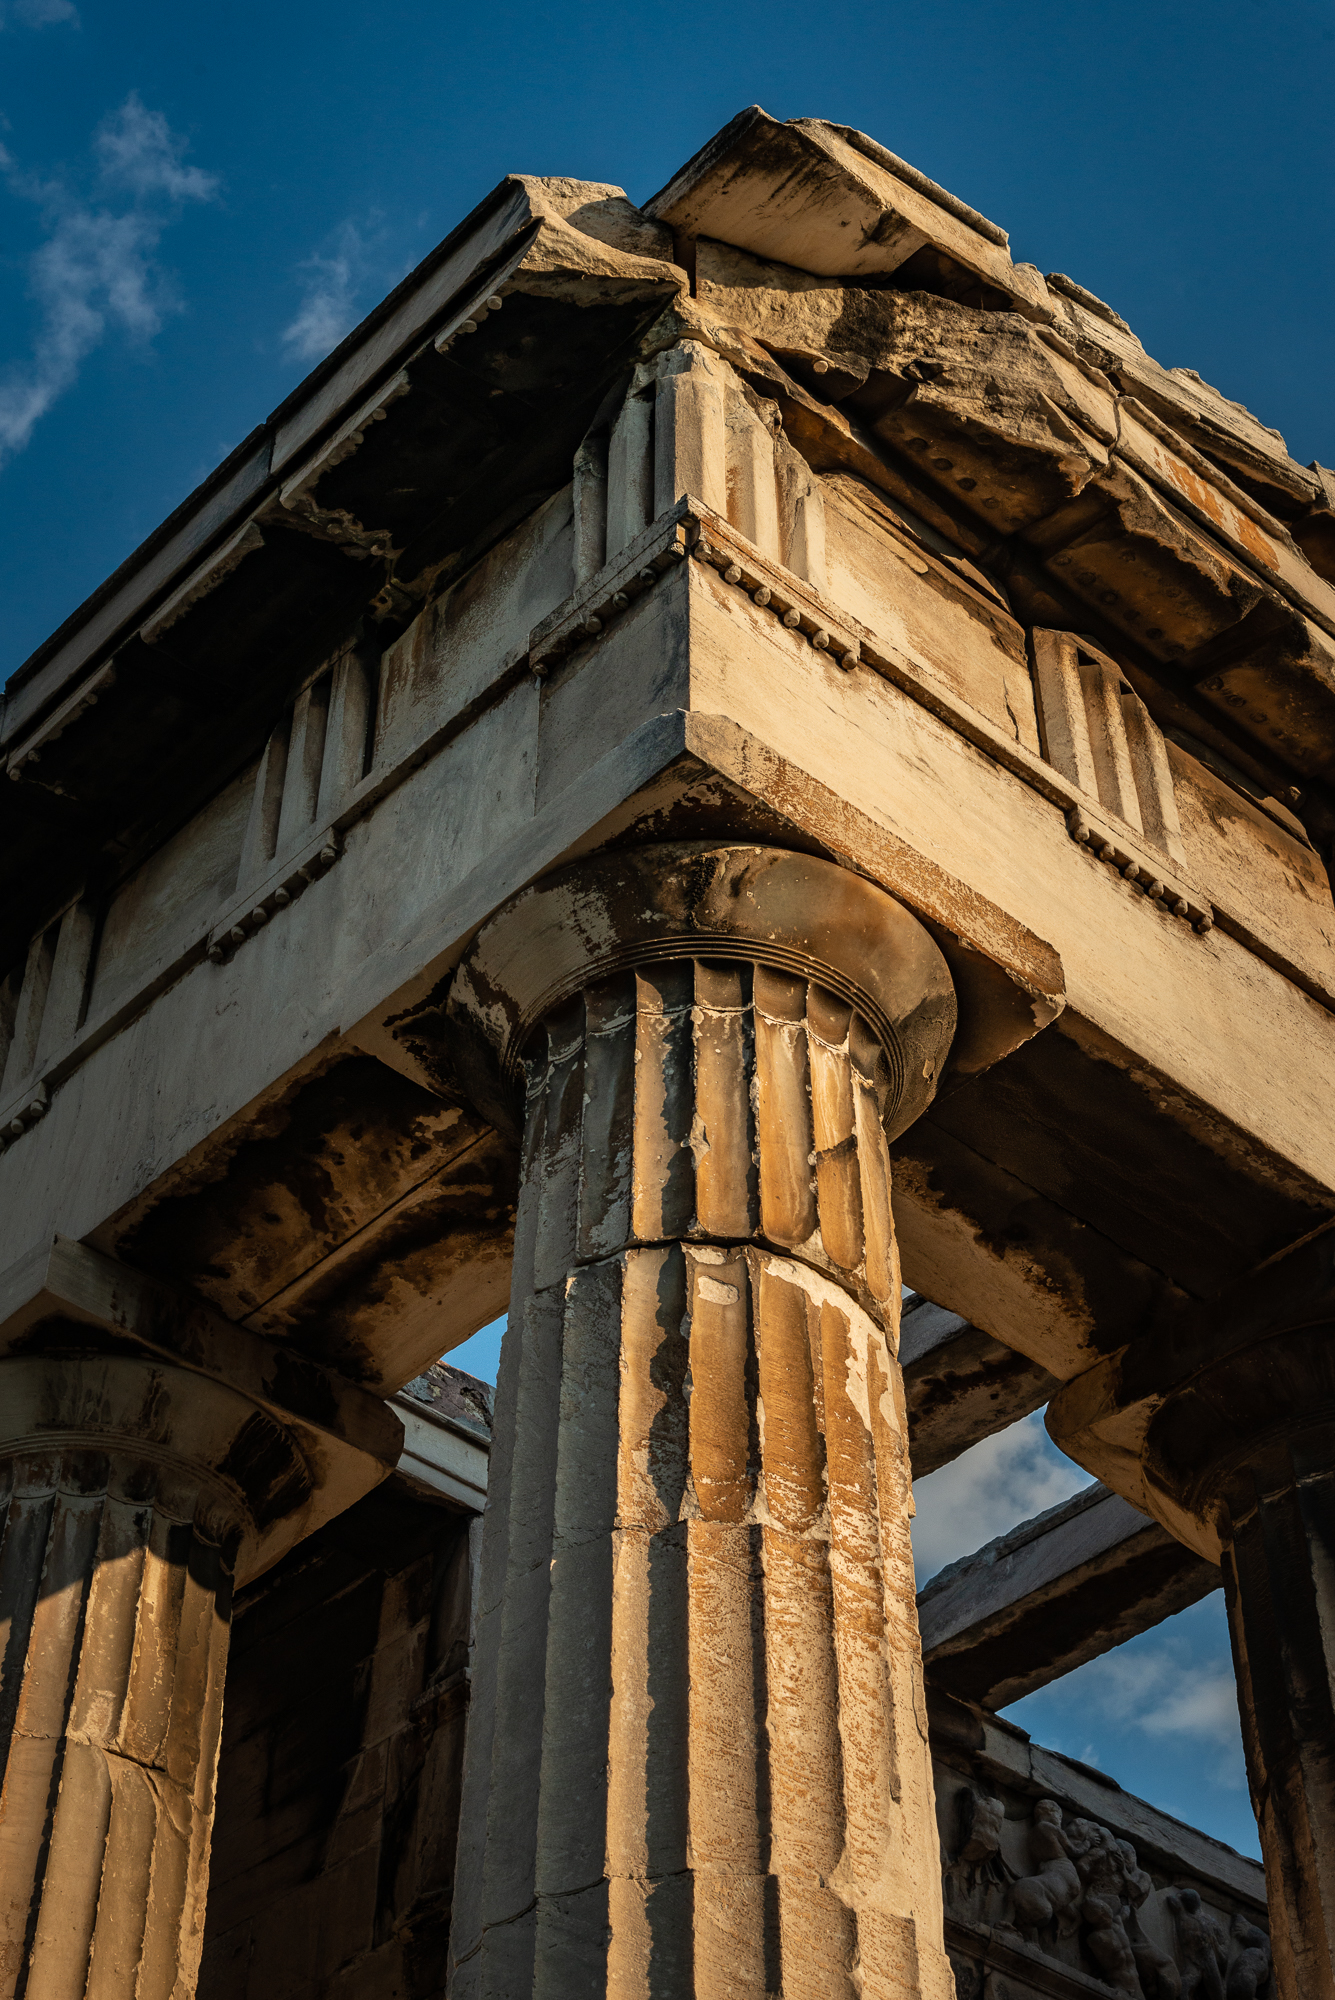 Architectural detail - top of the columns